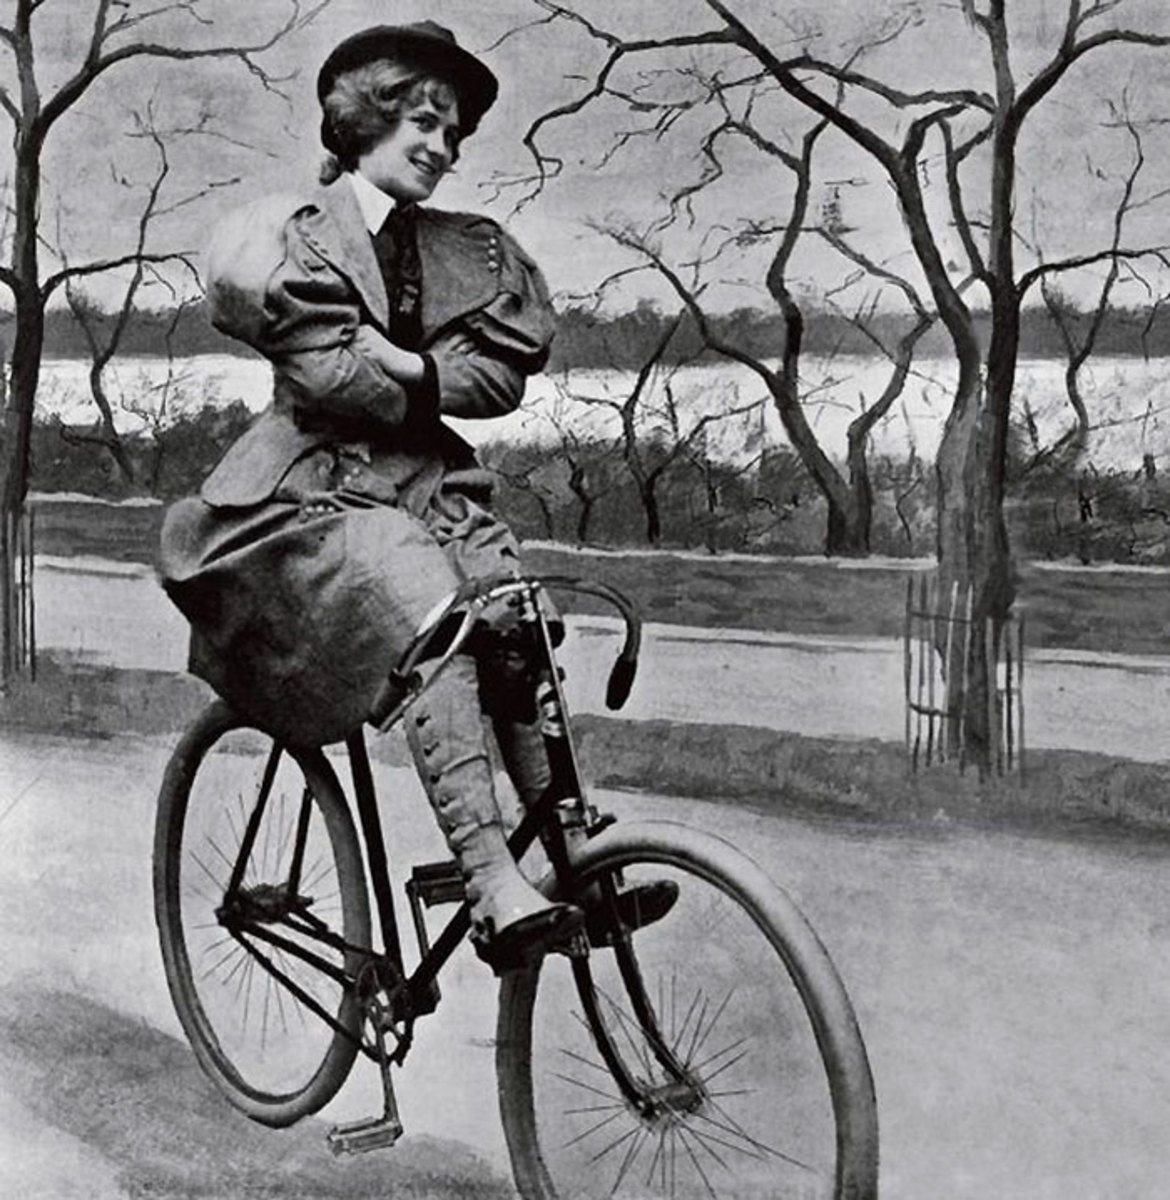 Funny Victorian lady riding a bicycle. Proof that not all old photos were so serious! lol!